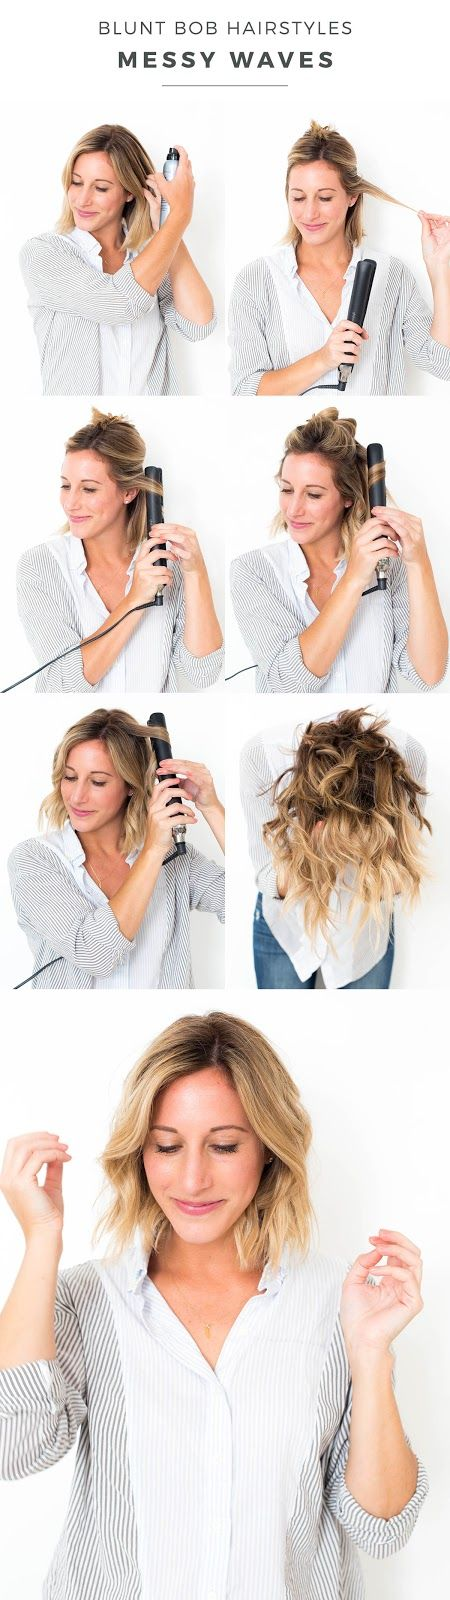 Blunt Bob Hairstyles Messy Waves is part of Blunt Bob Hairstyles Messy Waves Advice From A Twenty - As you may have noticed, I chopped off all my hair  Well, not all of it, but it sure feels like it! As I've been getting used to my new 'do, which always takes some time, I'll adm…